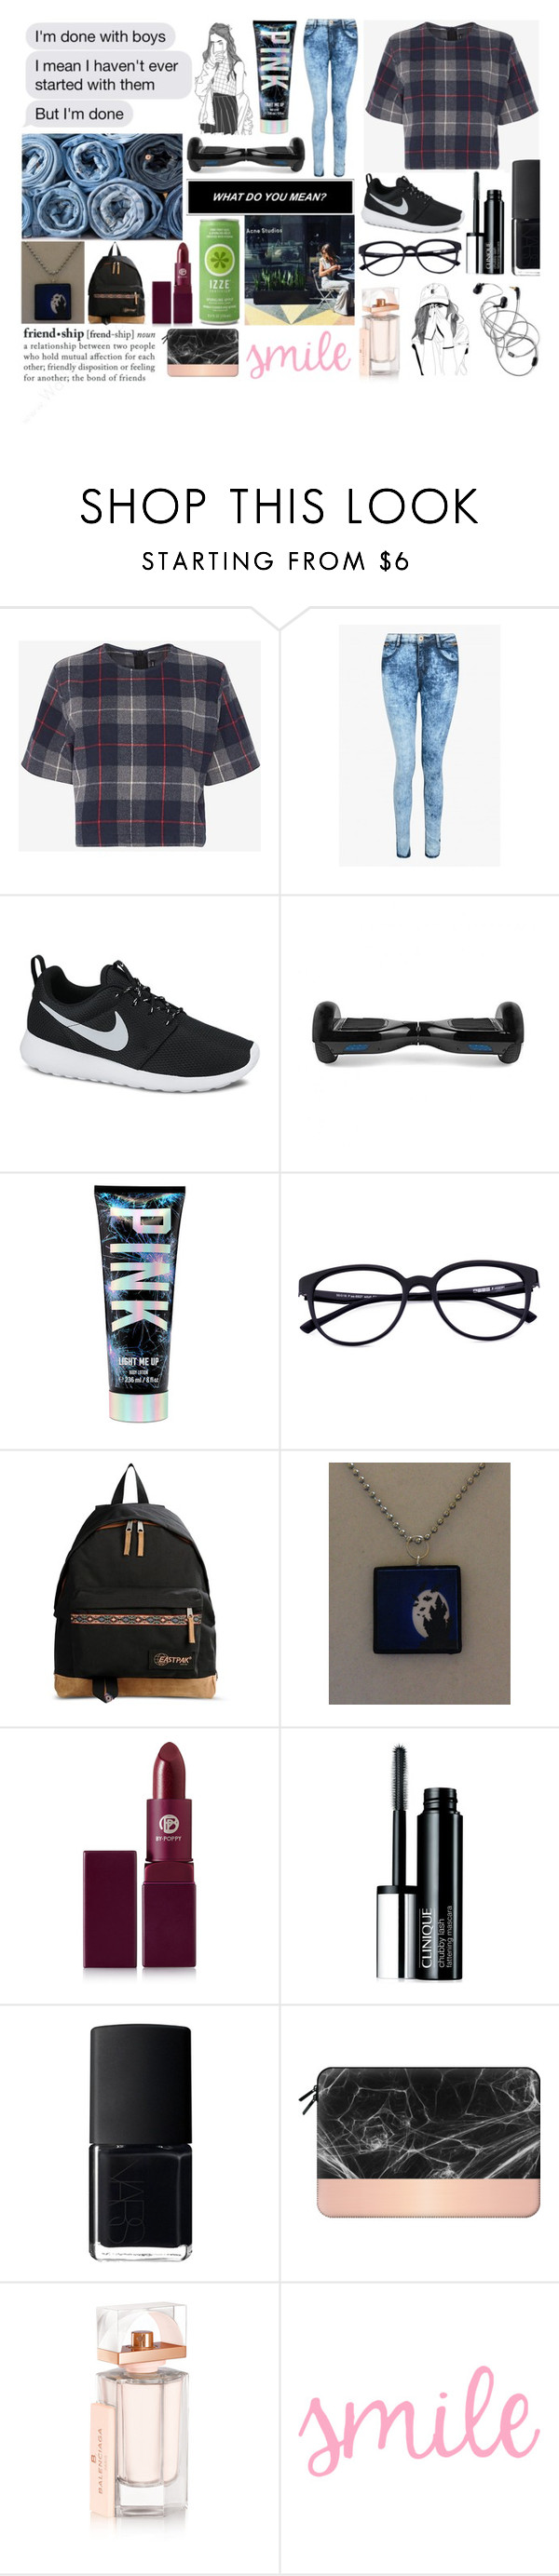 """""""Friend*Ship"""" by itsme-bibicha ❤ liked on Polyvore featuring rag & bone, NIKE, AllSaints, Eastpak, Lipstick Queen, Clinique, NARS Cosmetics, Casetify and Balenciaga"""